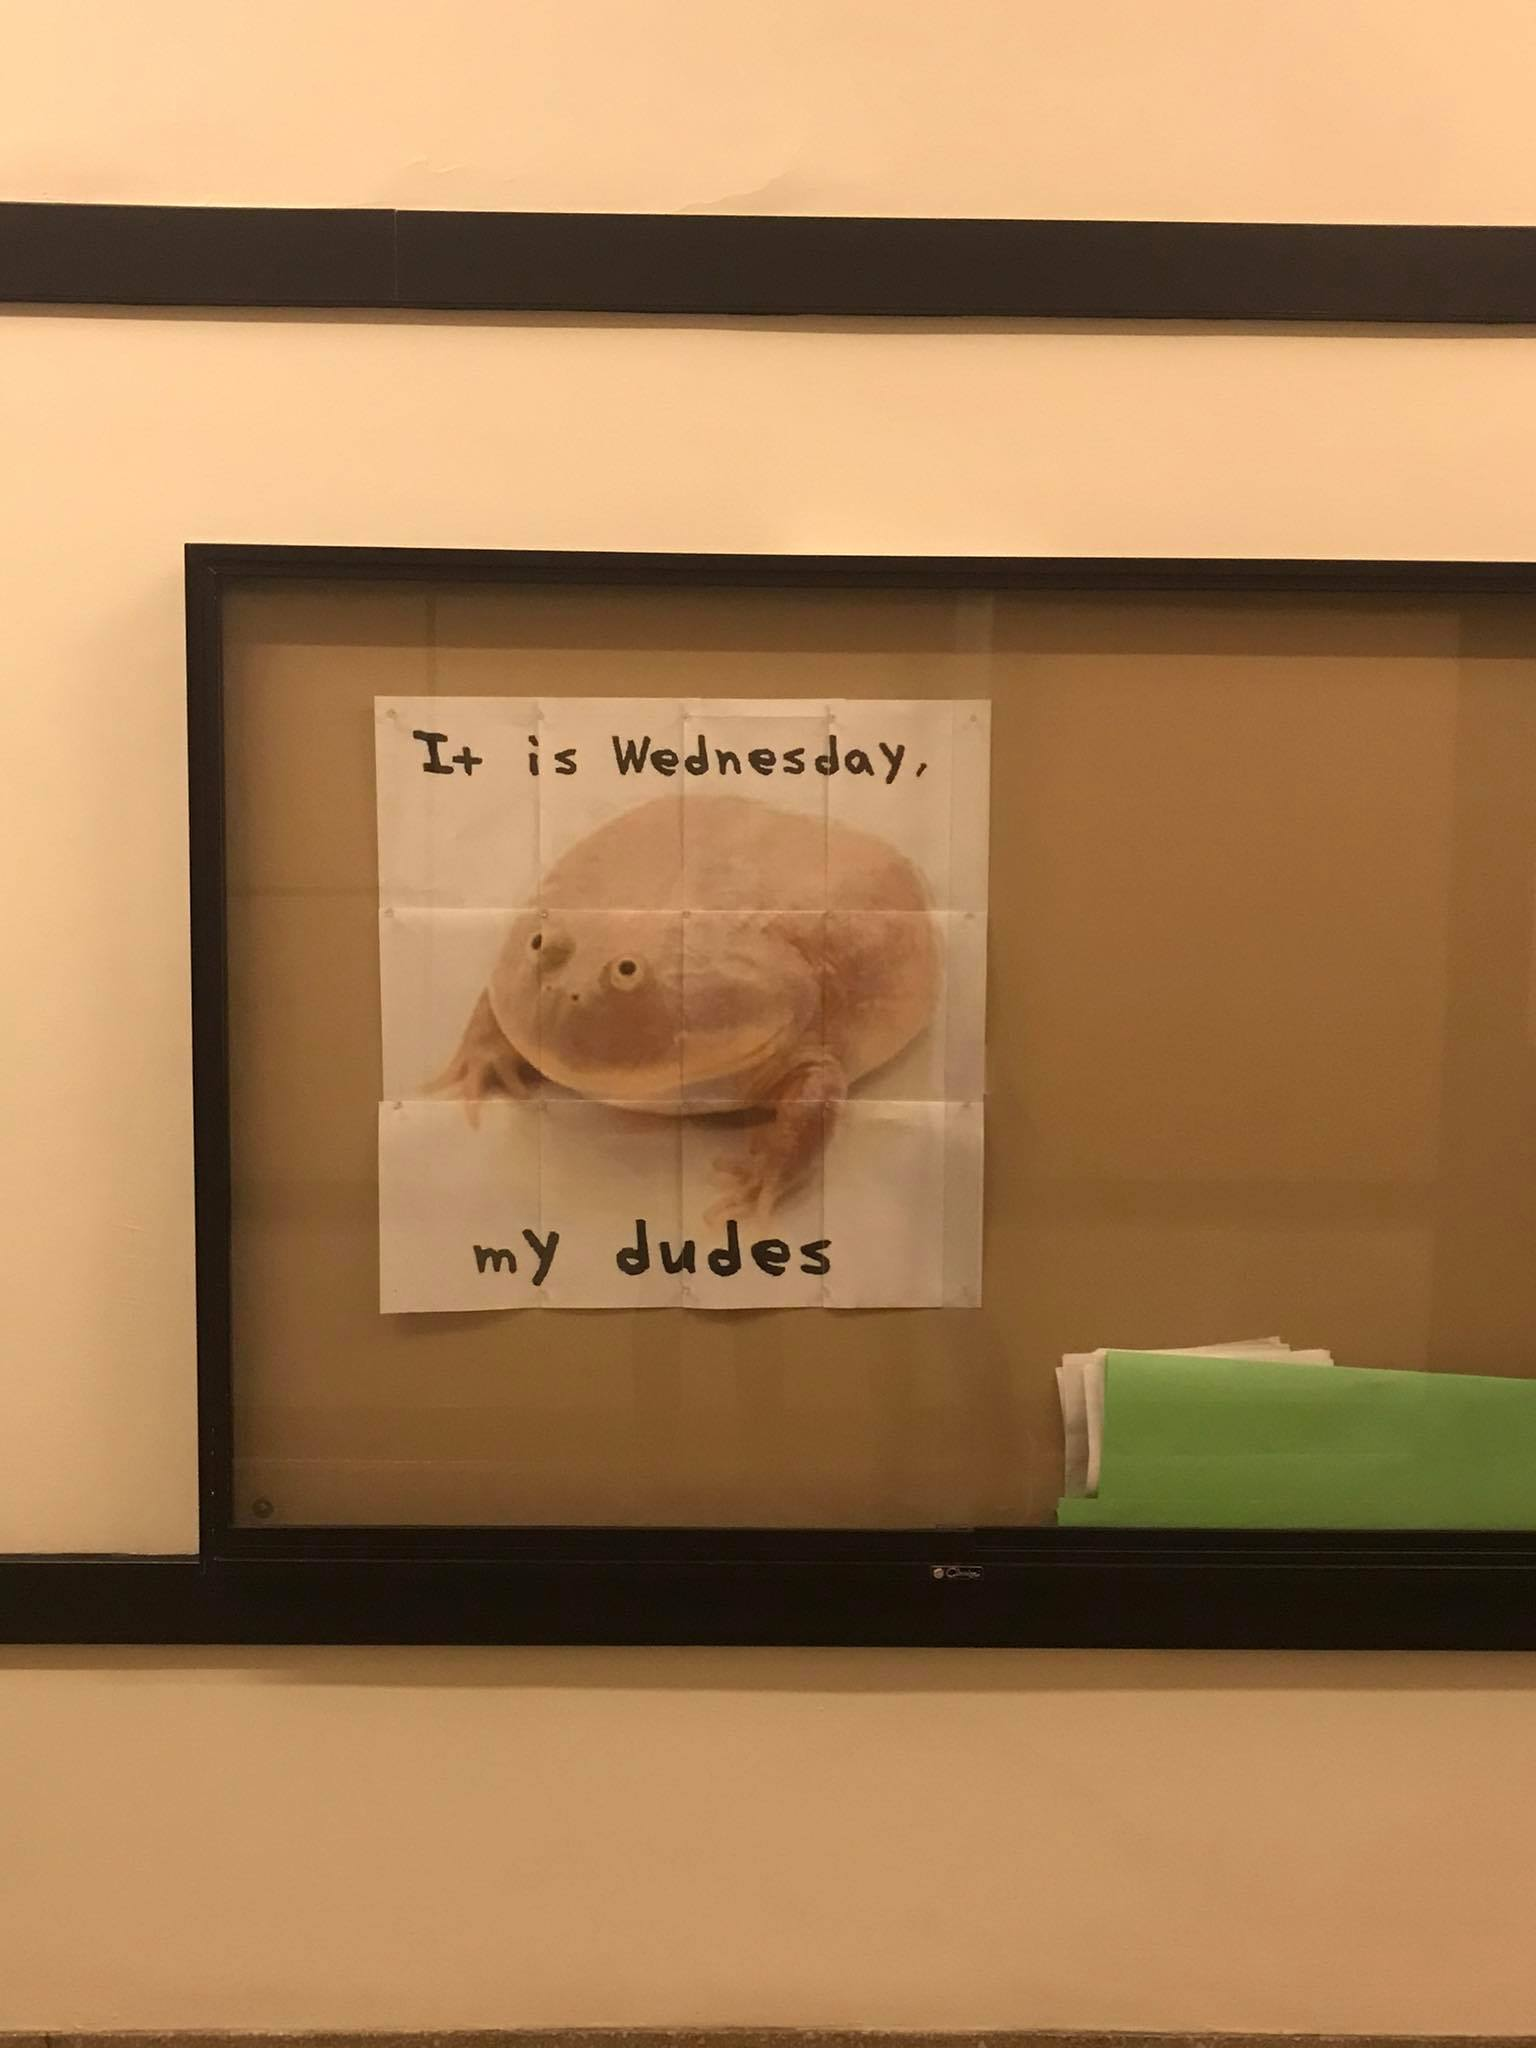 the wednesday frog meme on a bulletin board in the infinite corridor